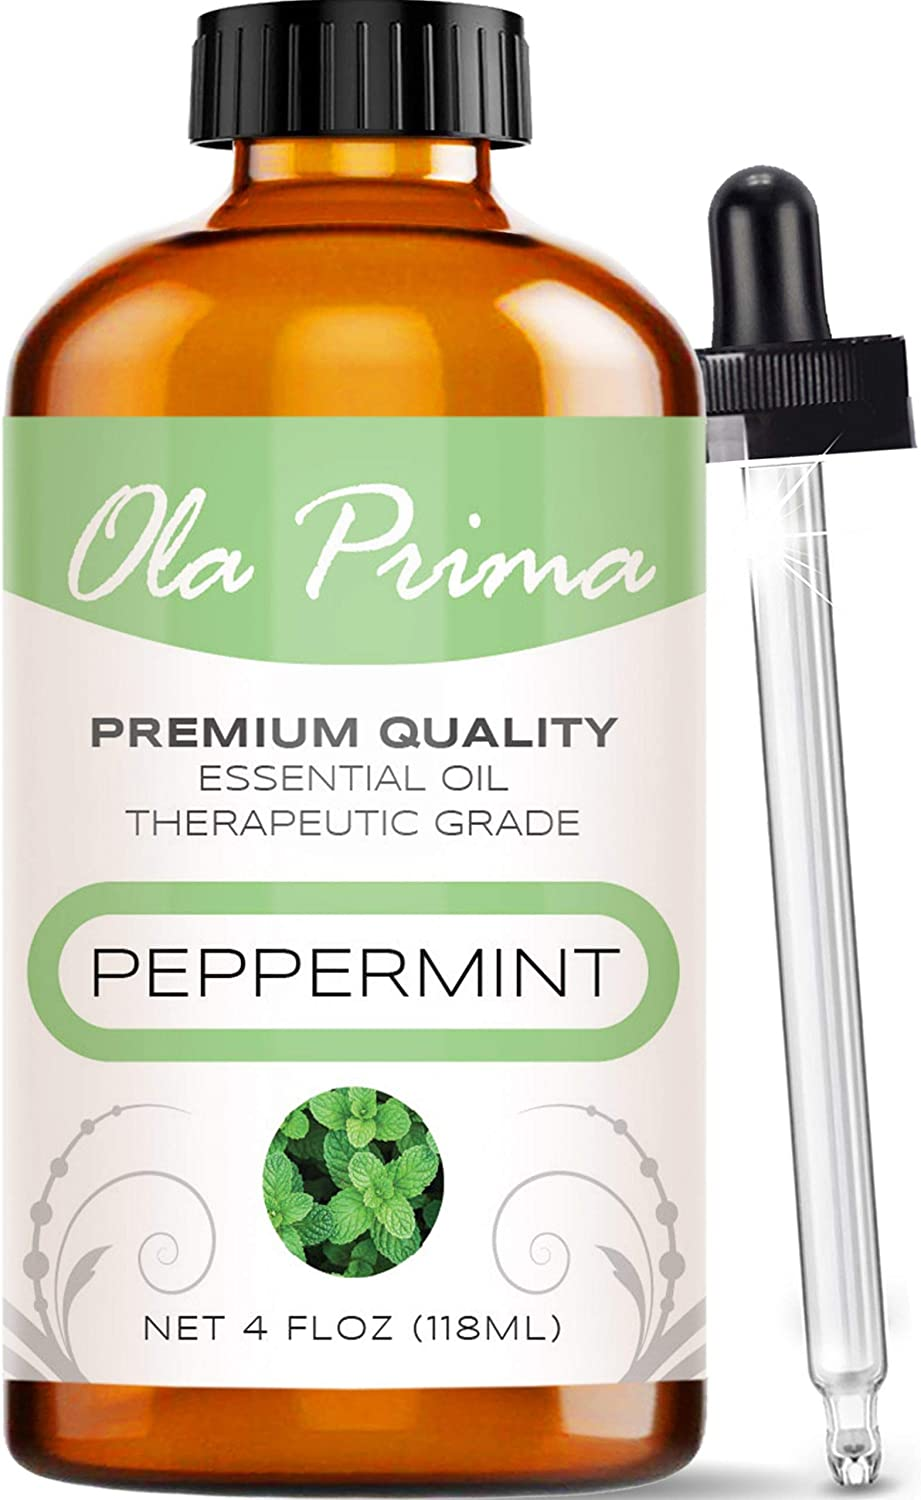 Ola Prima 4oz - Premium Quality Peppermint Essential Oil (4 Ounce Bottle) Therapeutic Grade Peppermint Oil